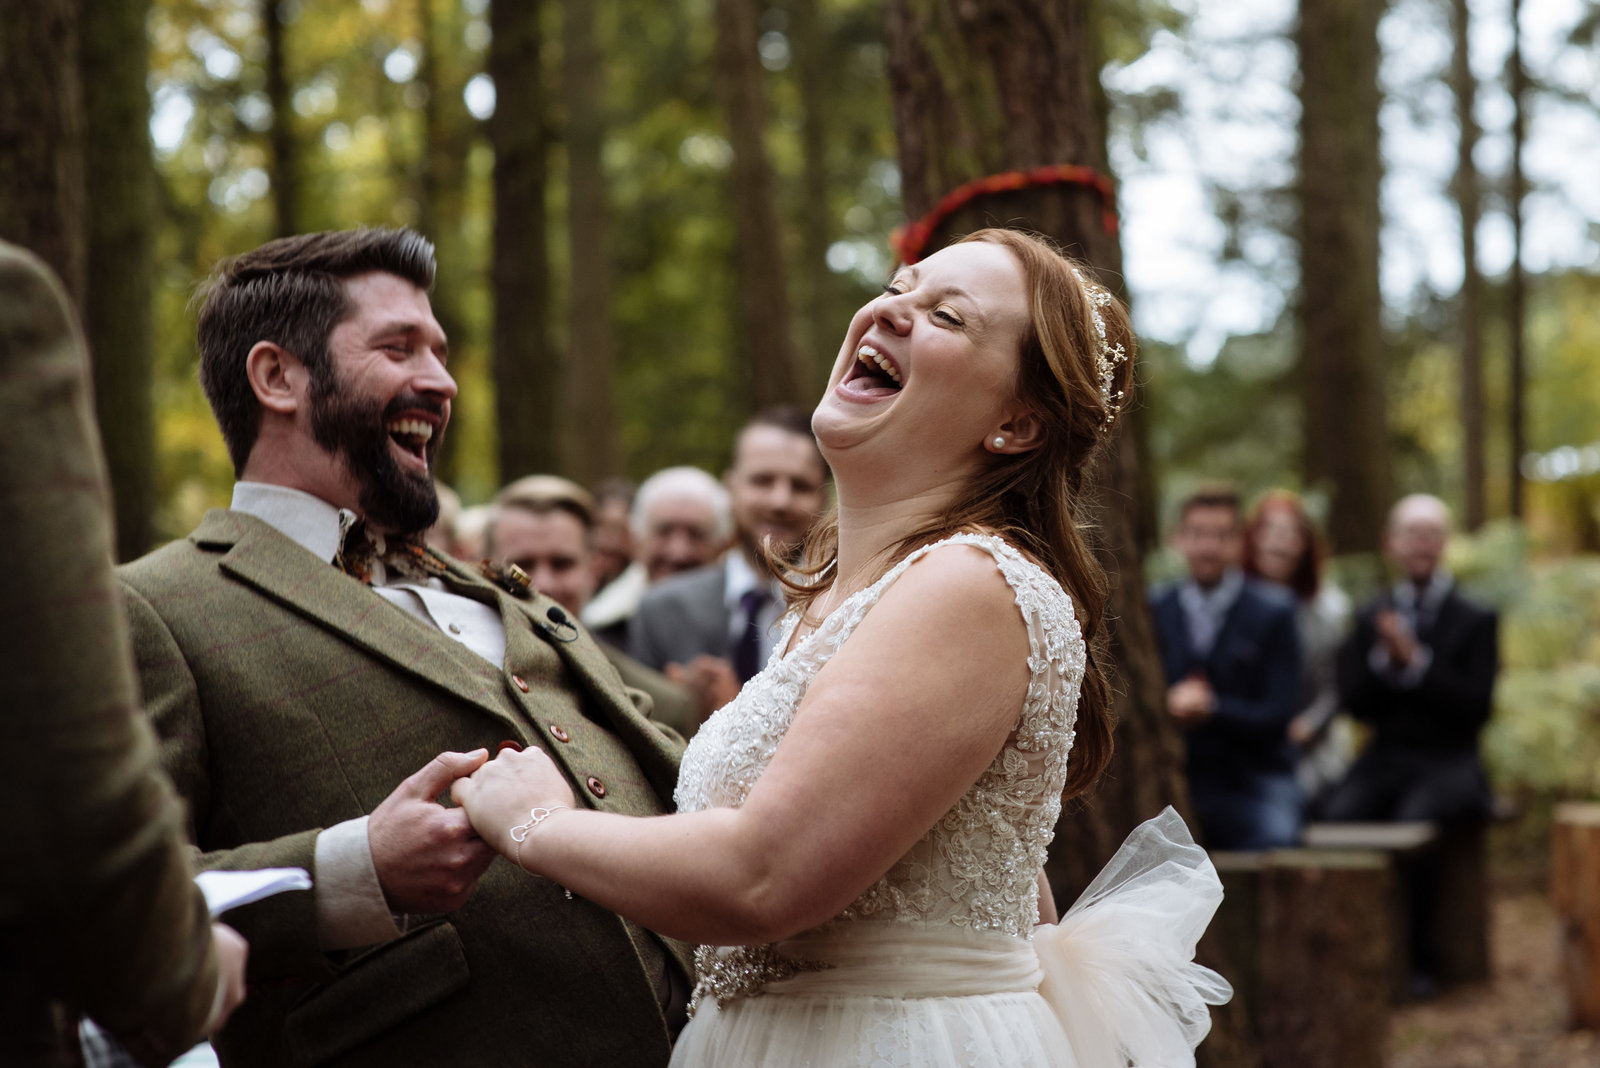 Woodland wedding ceremony at Camp Katur. yorkshire documentary wedding photographer